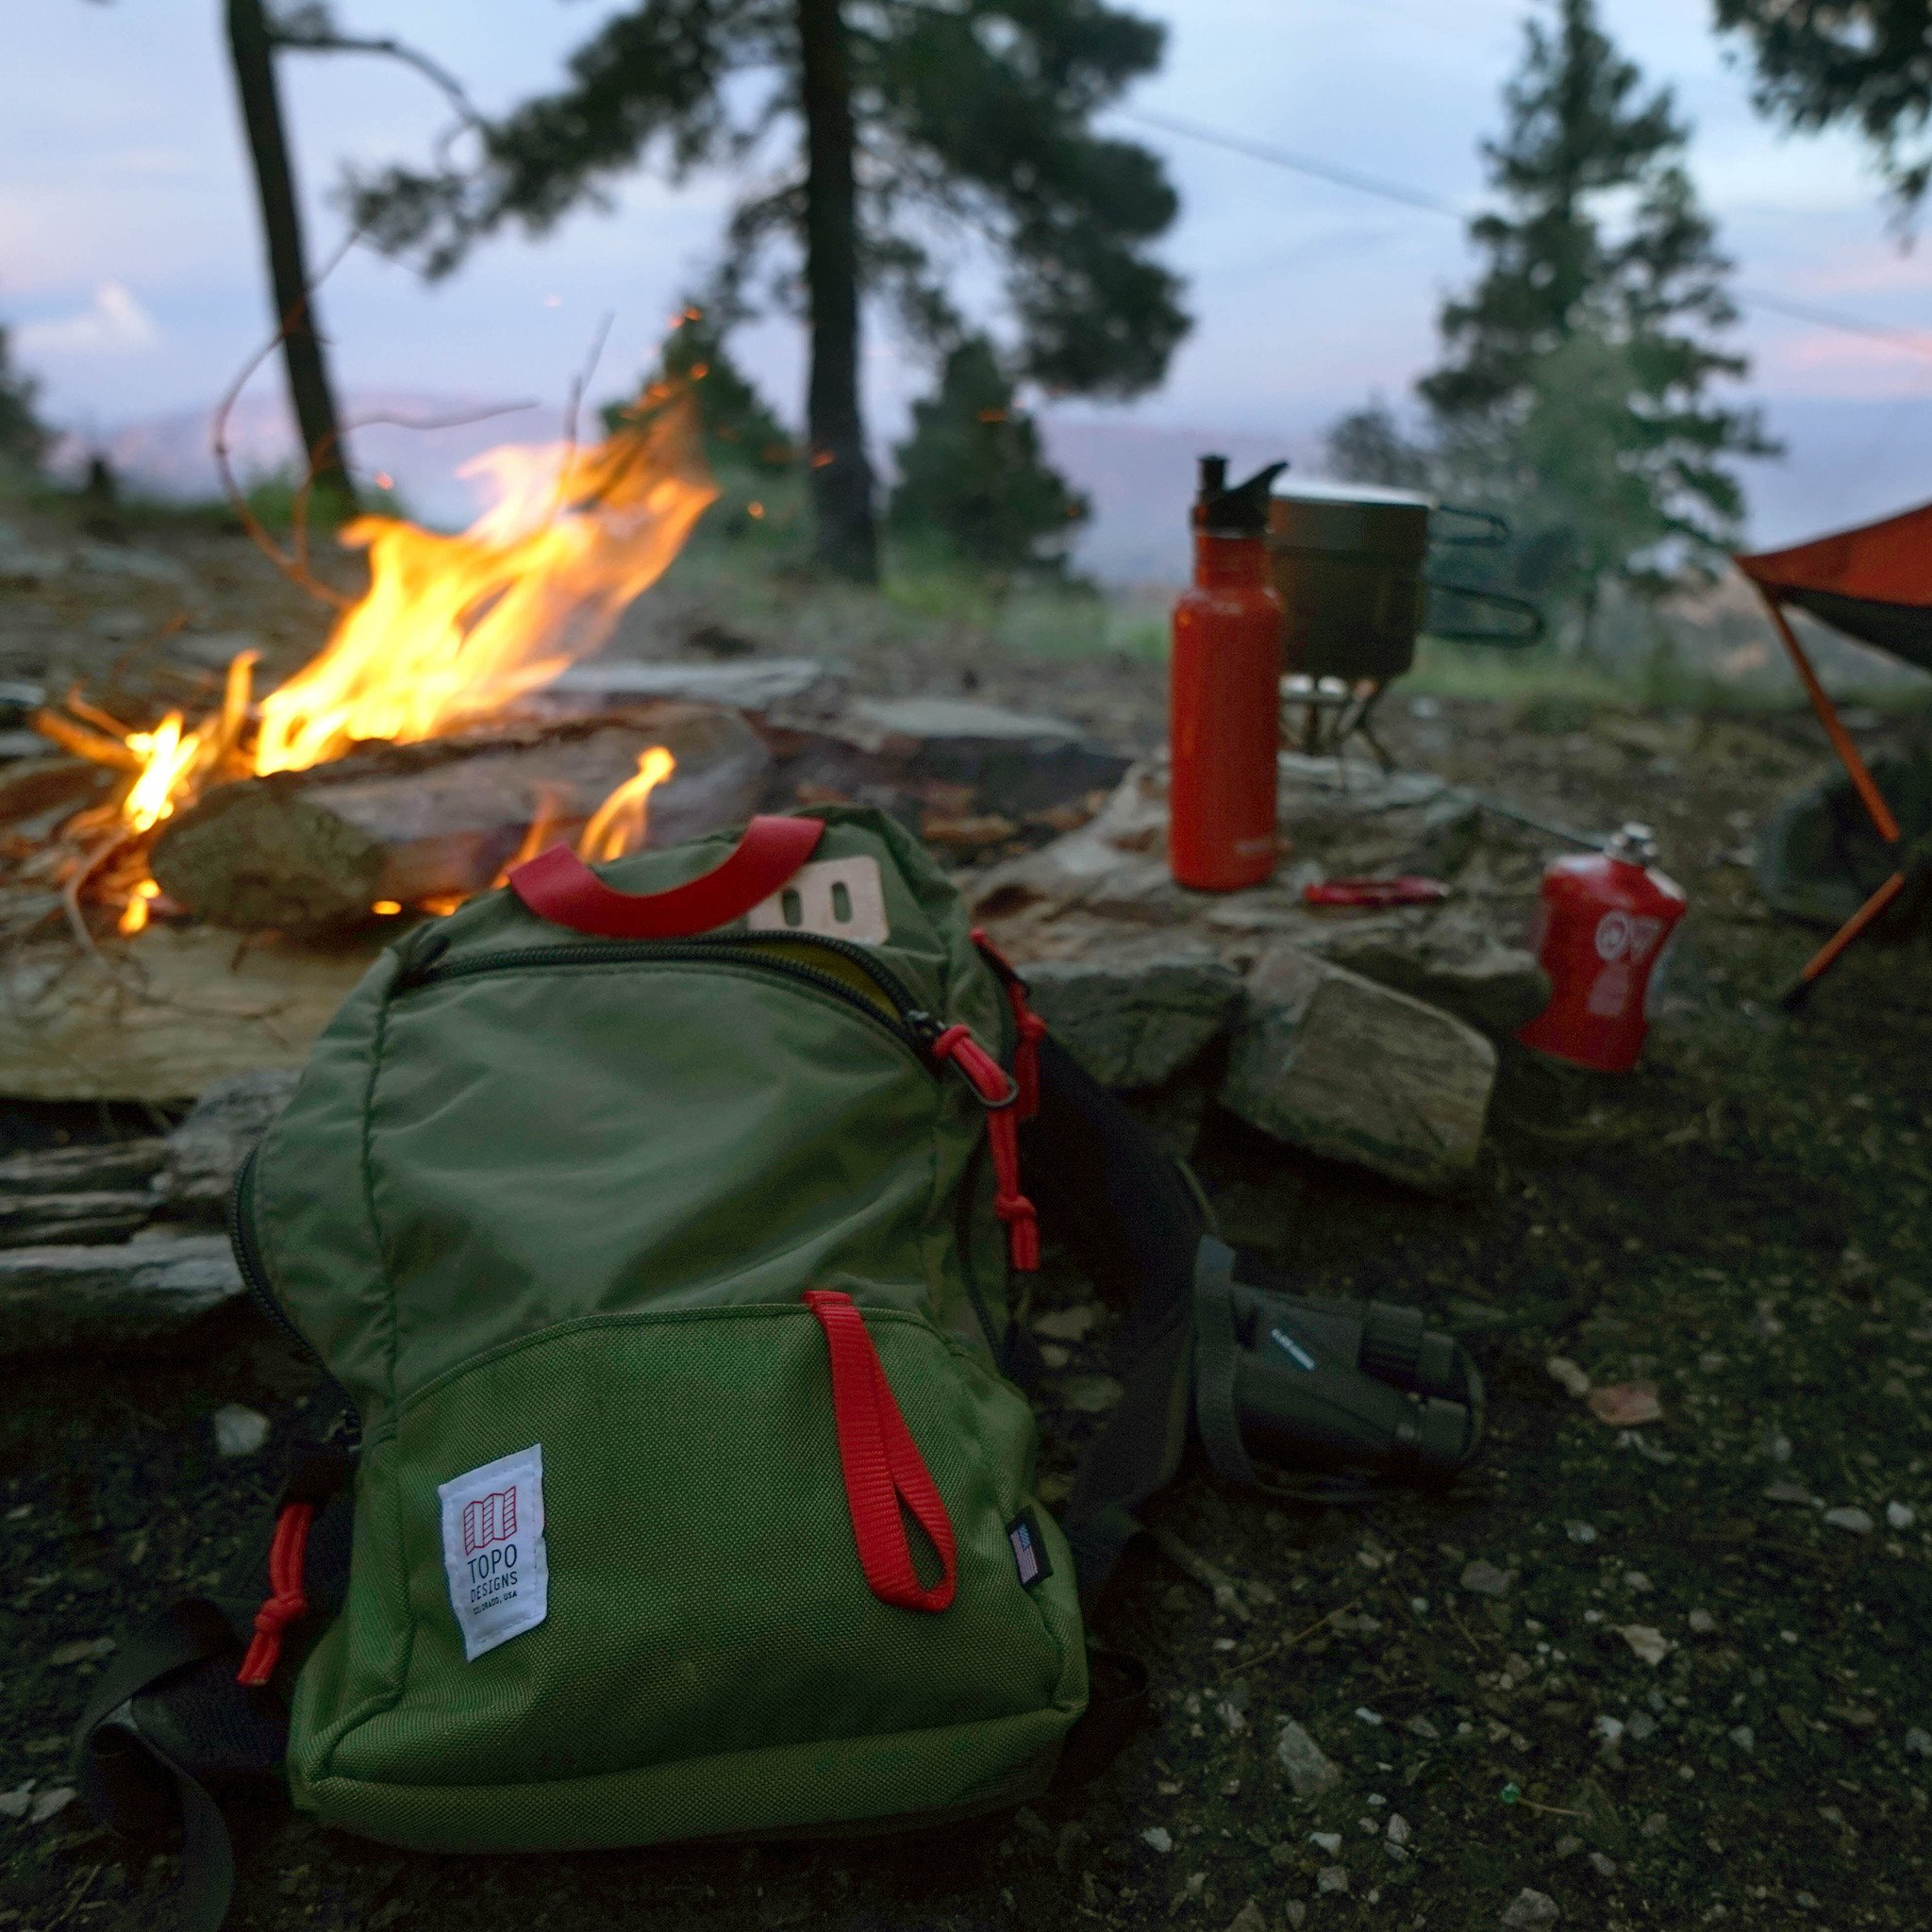 Topo Designs Trip Pack perfect bag for every trip